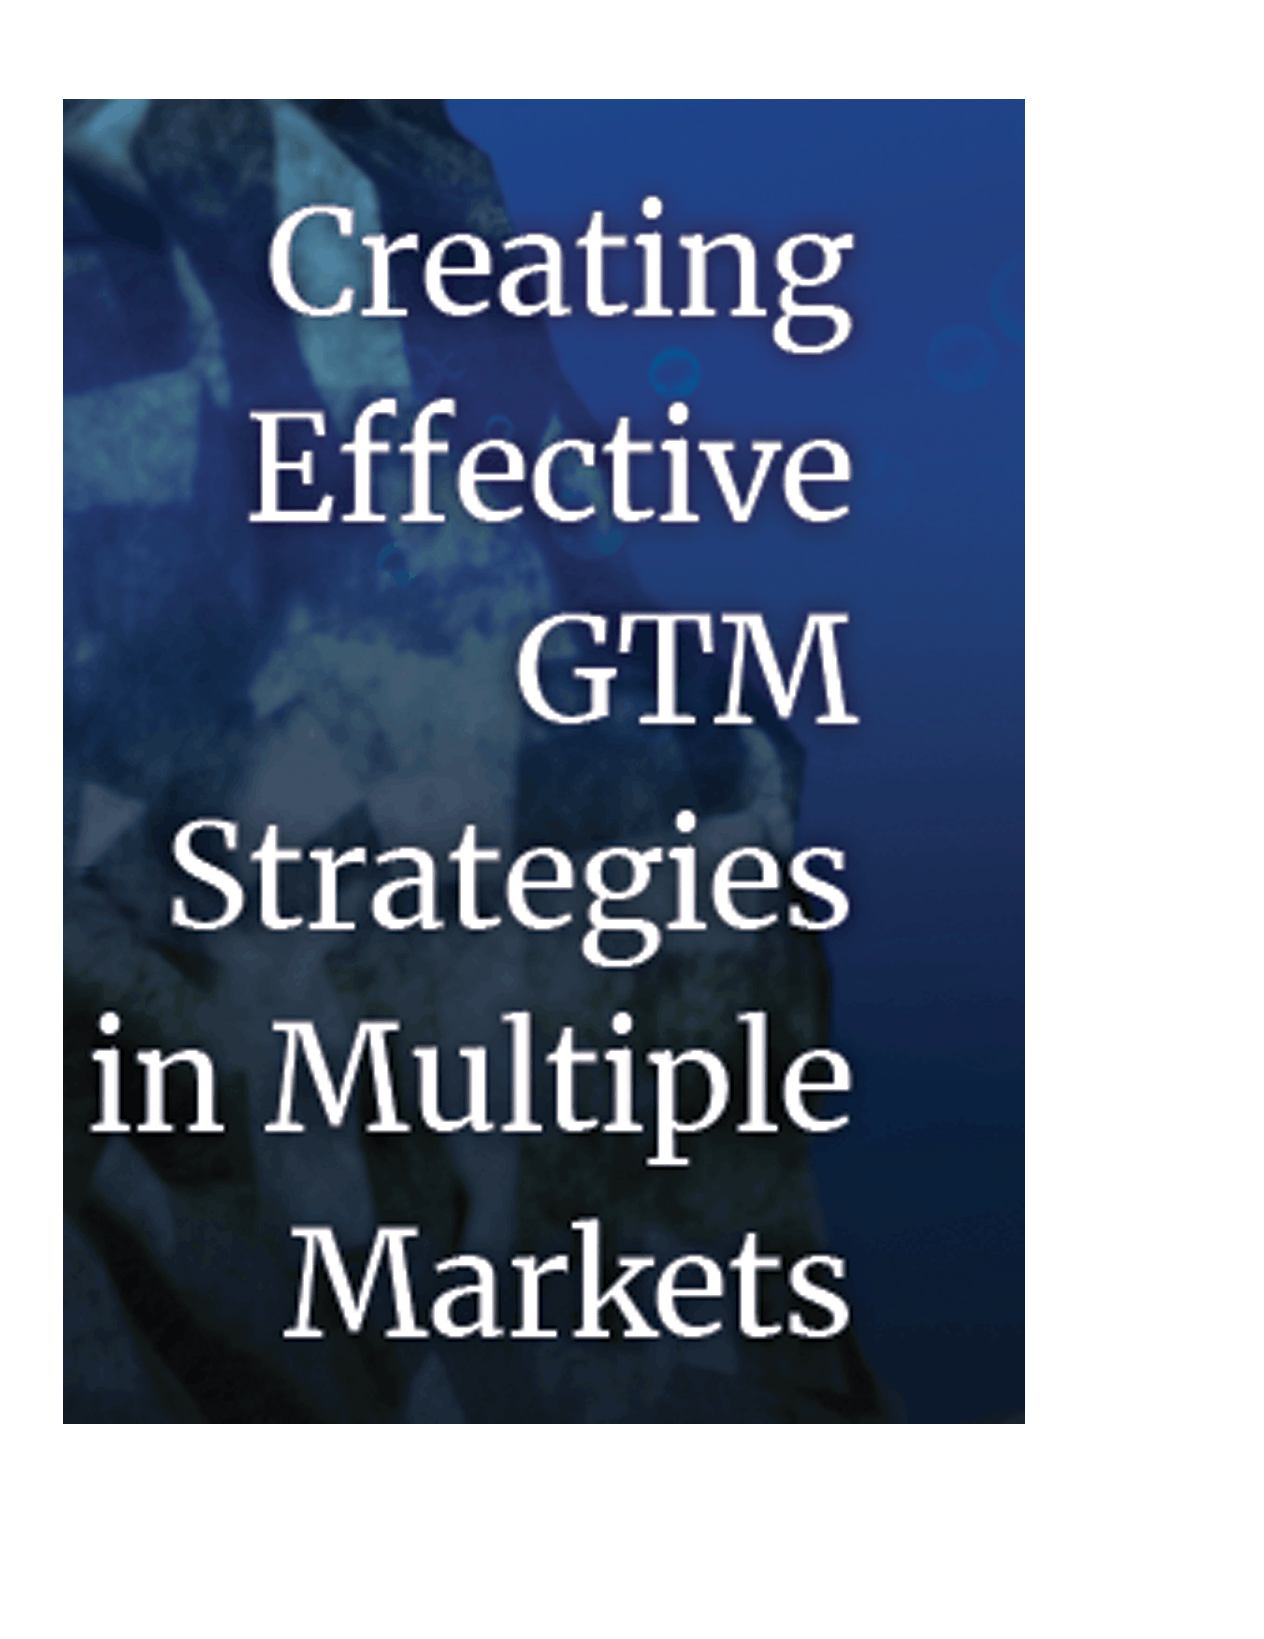 creating Effective GTM Strategies in multiple markets